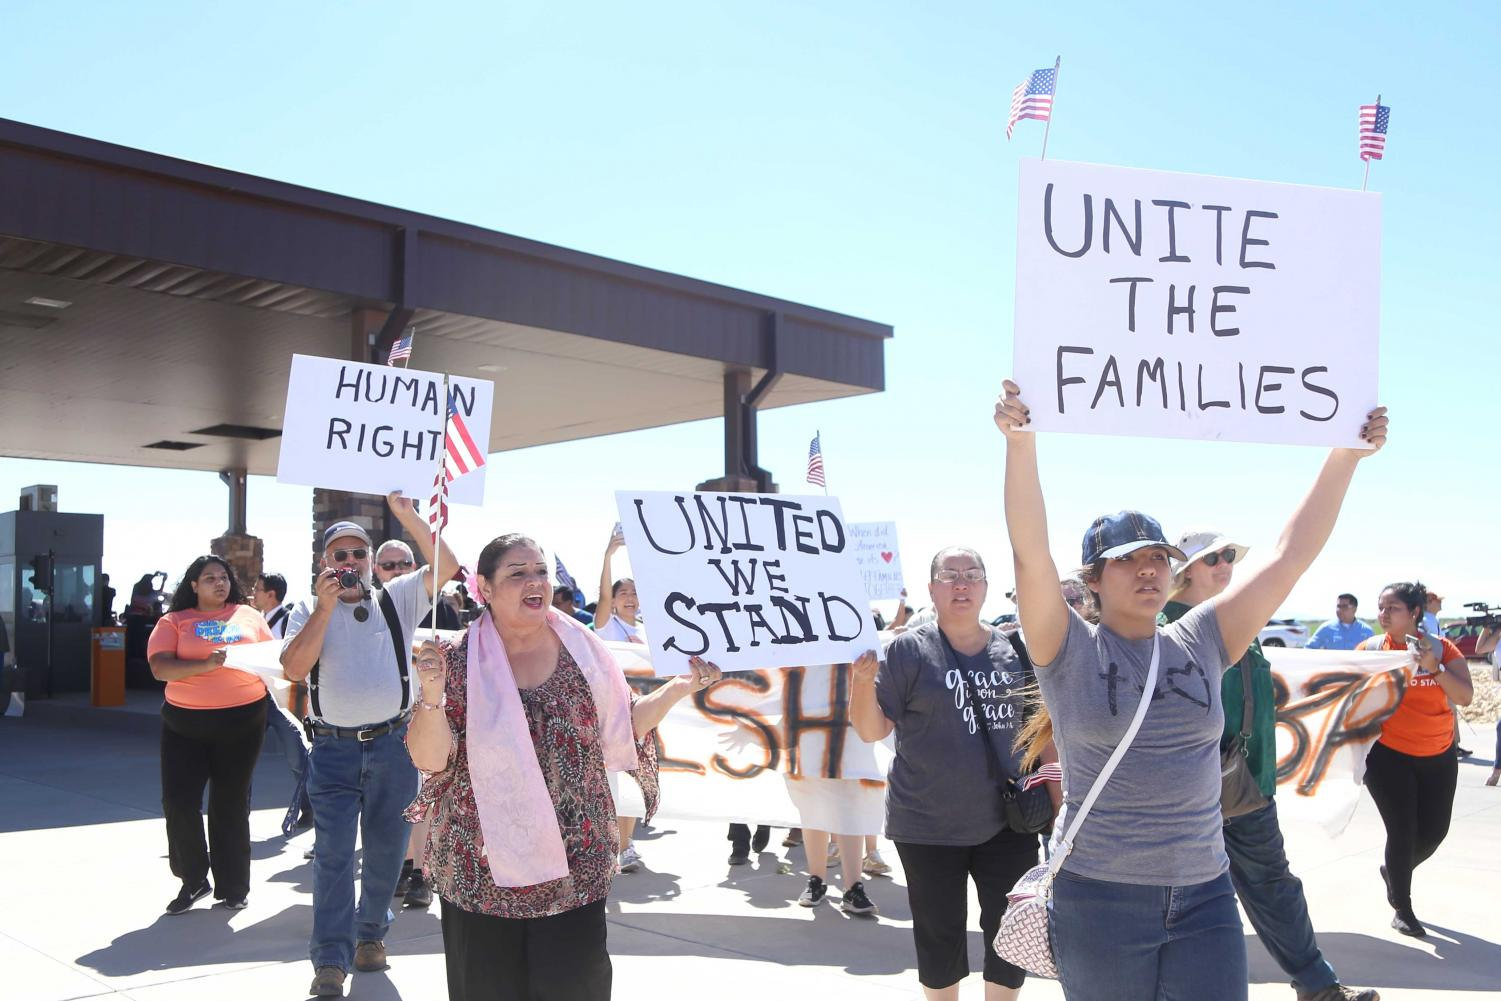 Hundreds+march+to+demand+an+end+to+family+separation+at+the+border